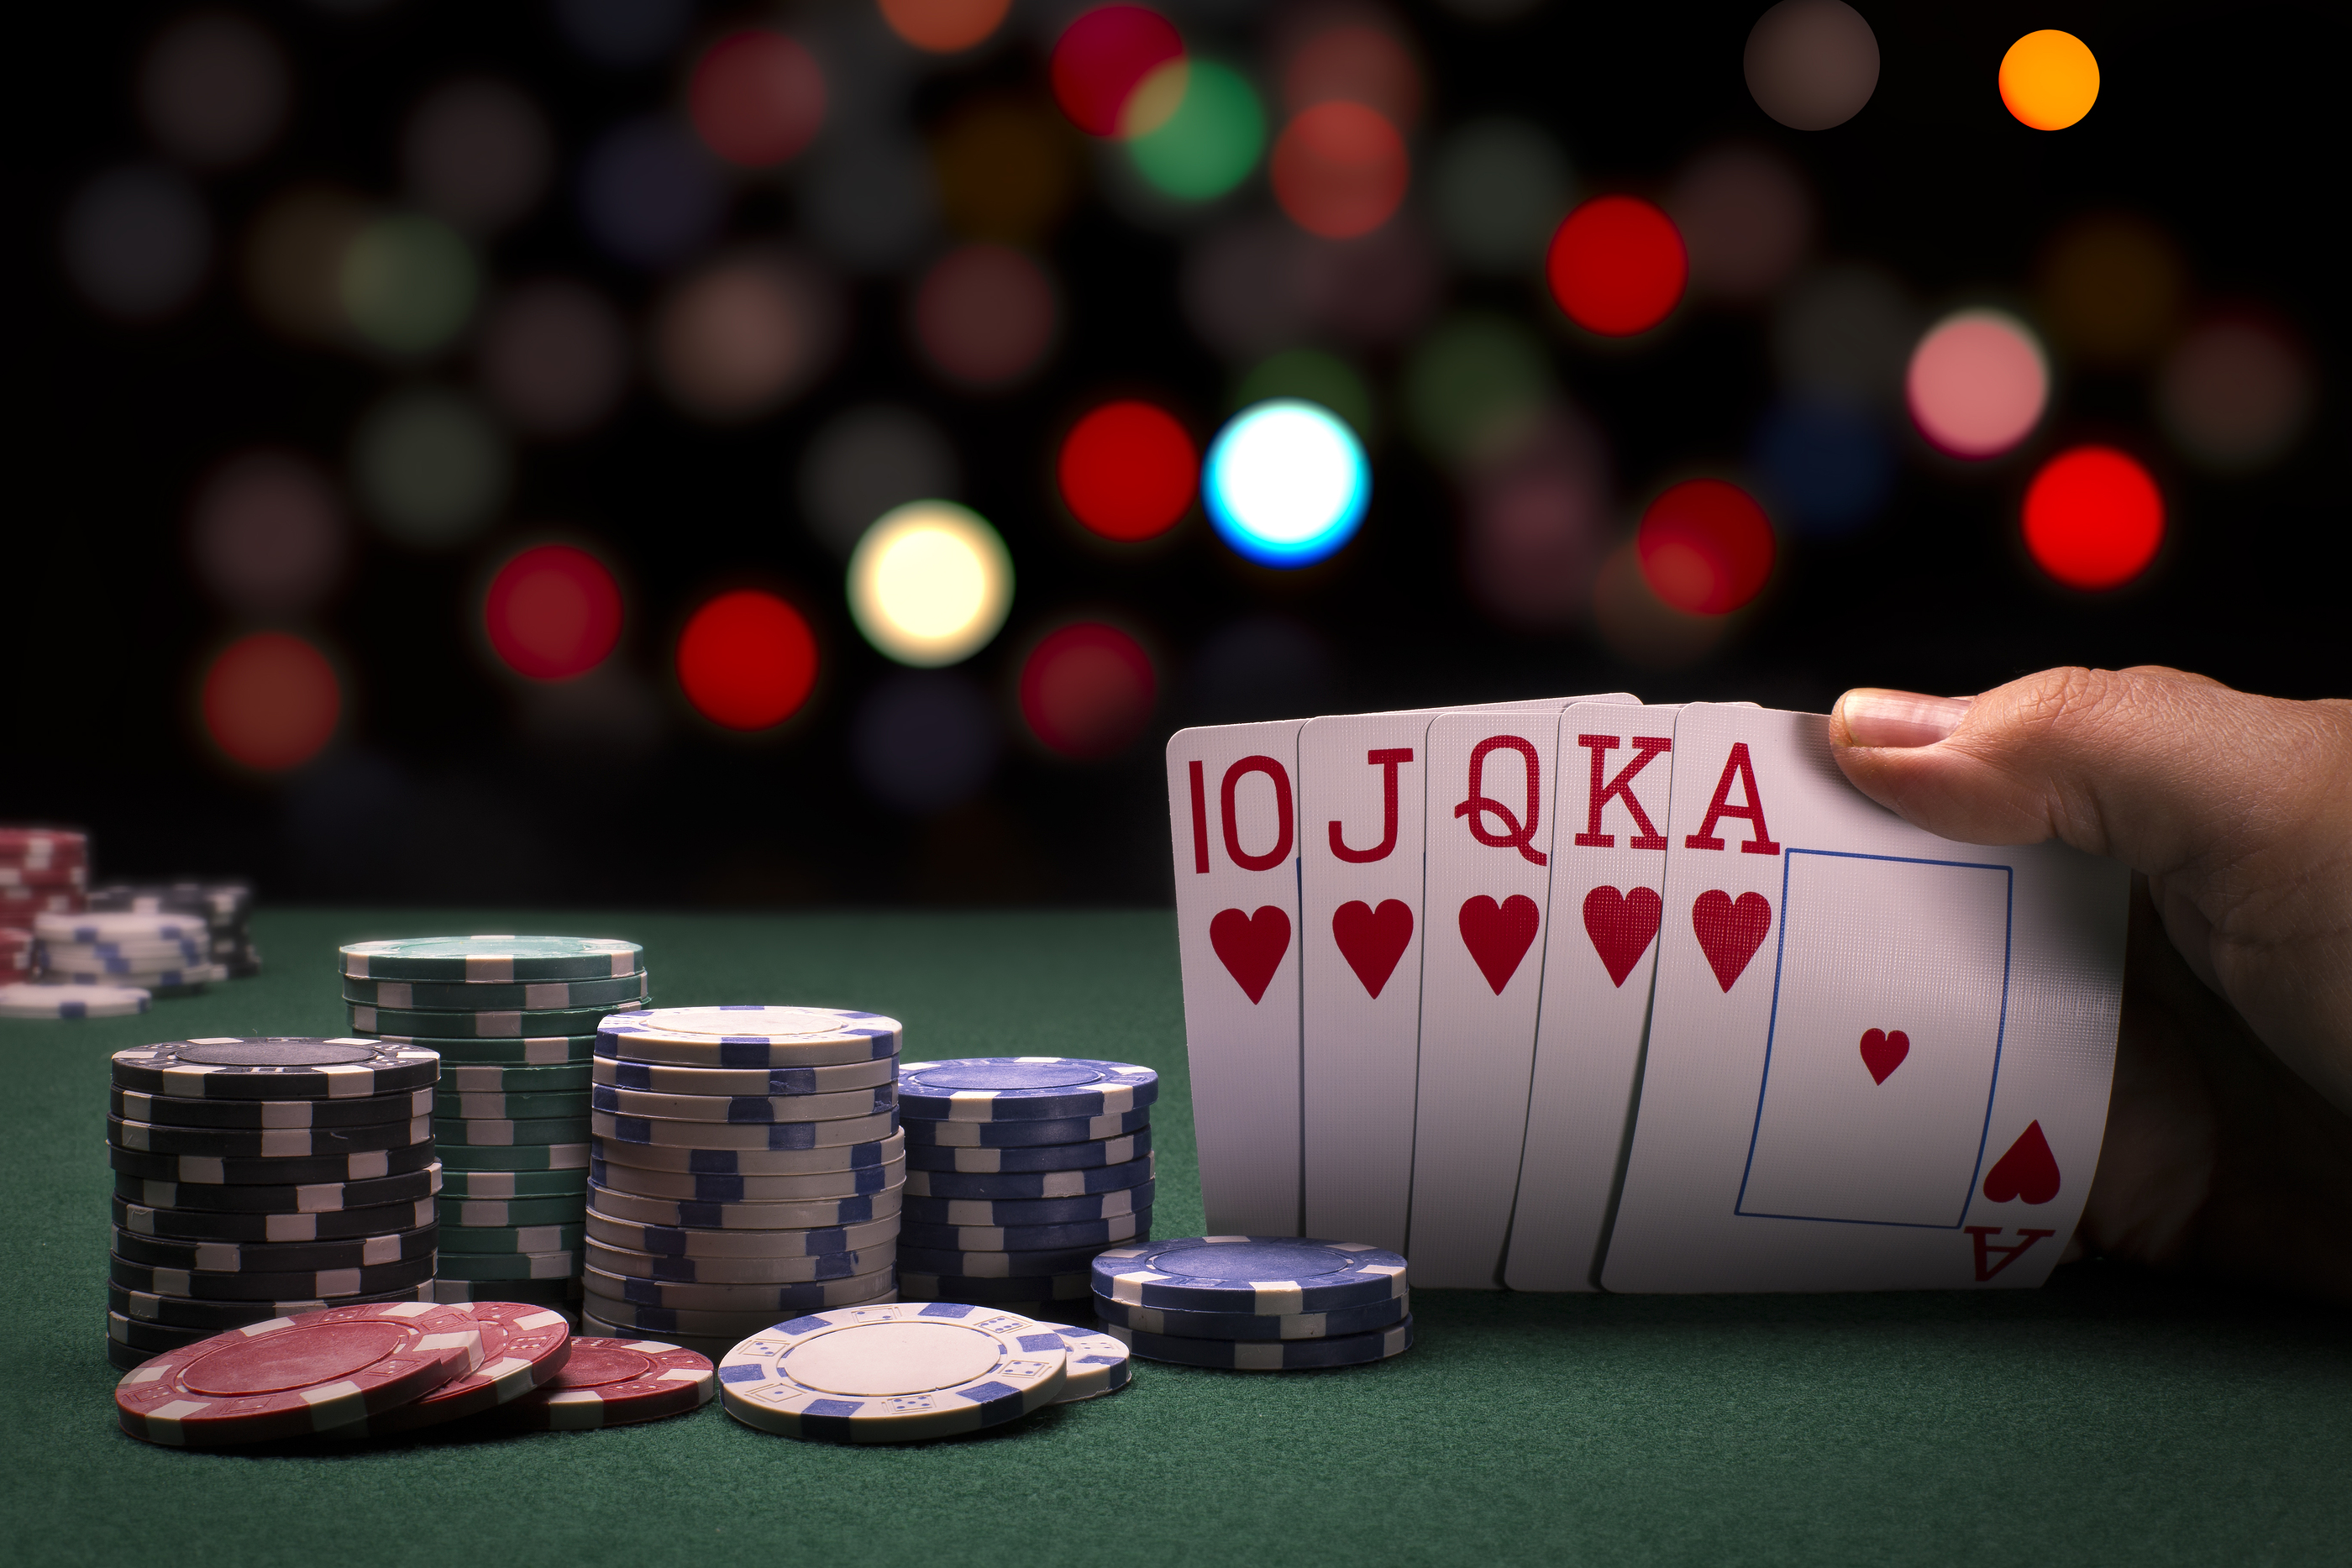 How to improve poker tournament play